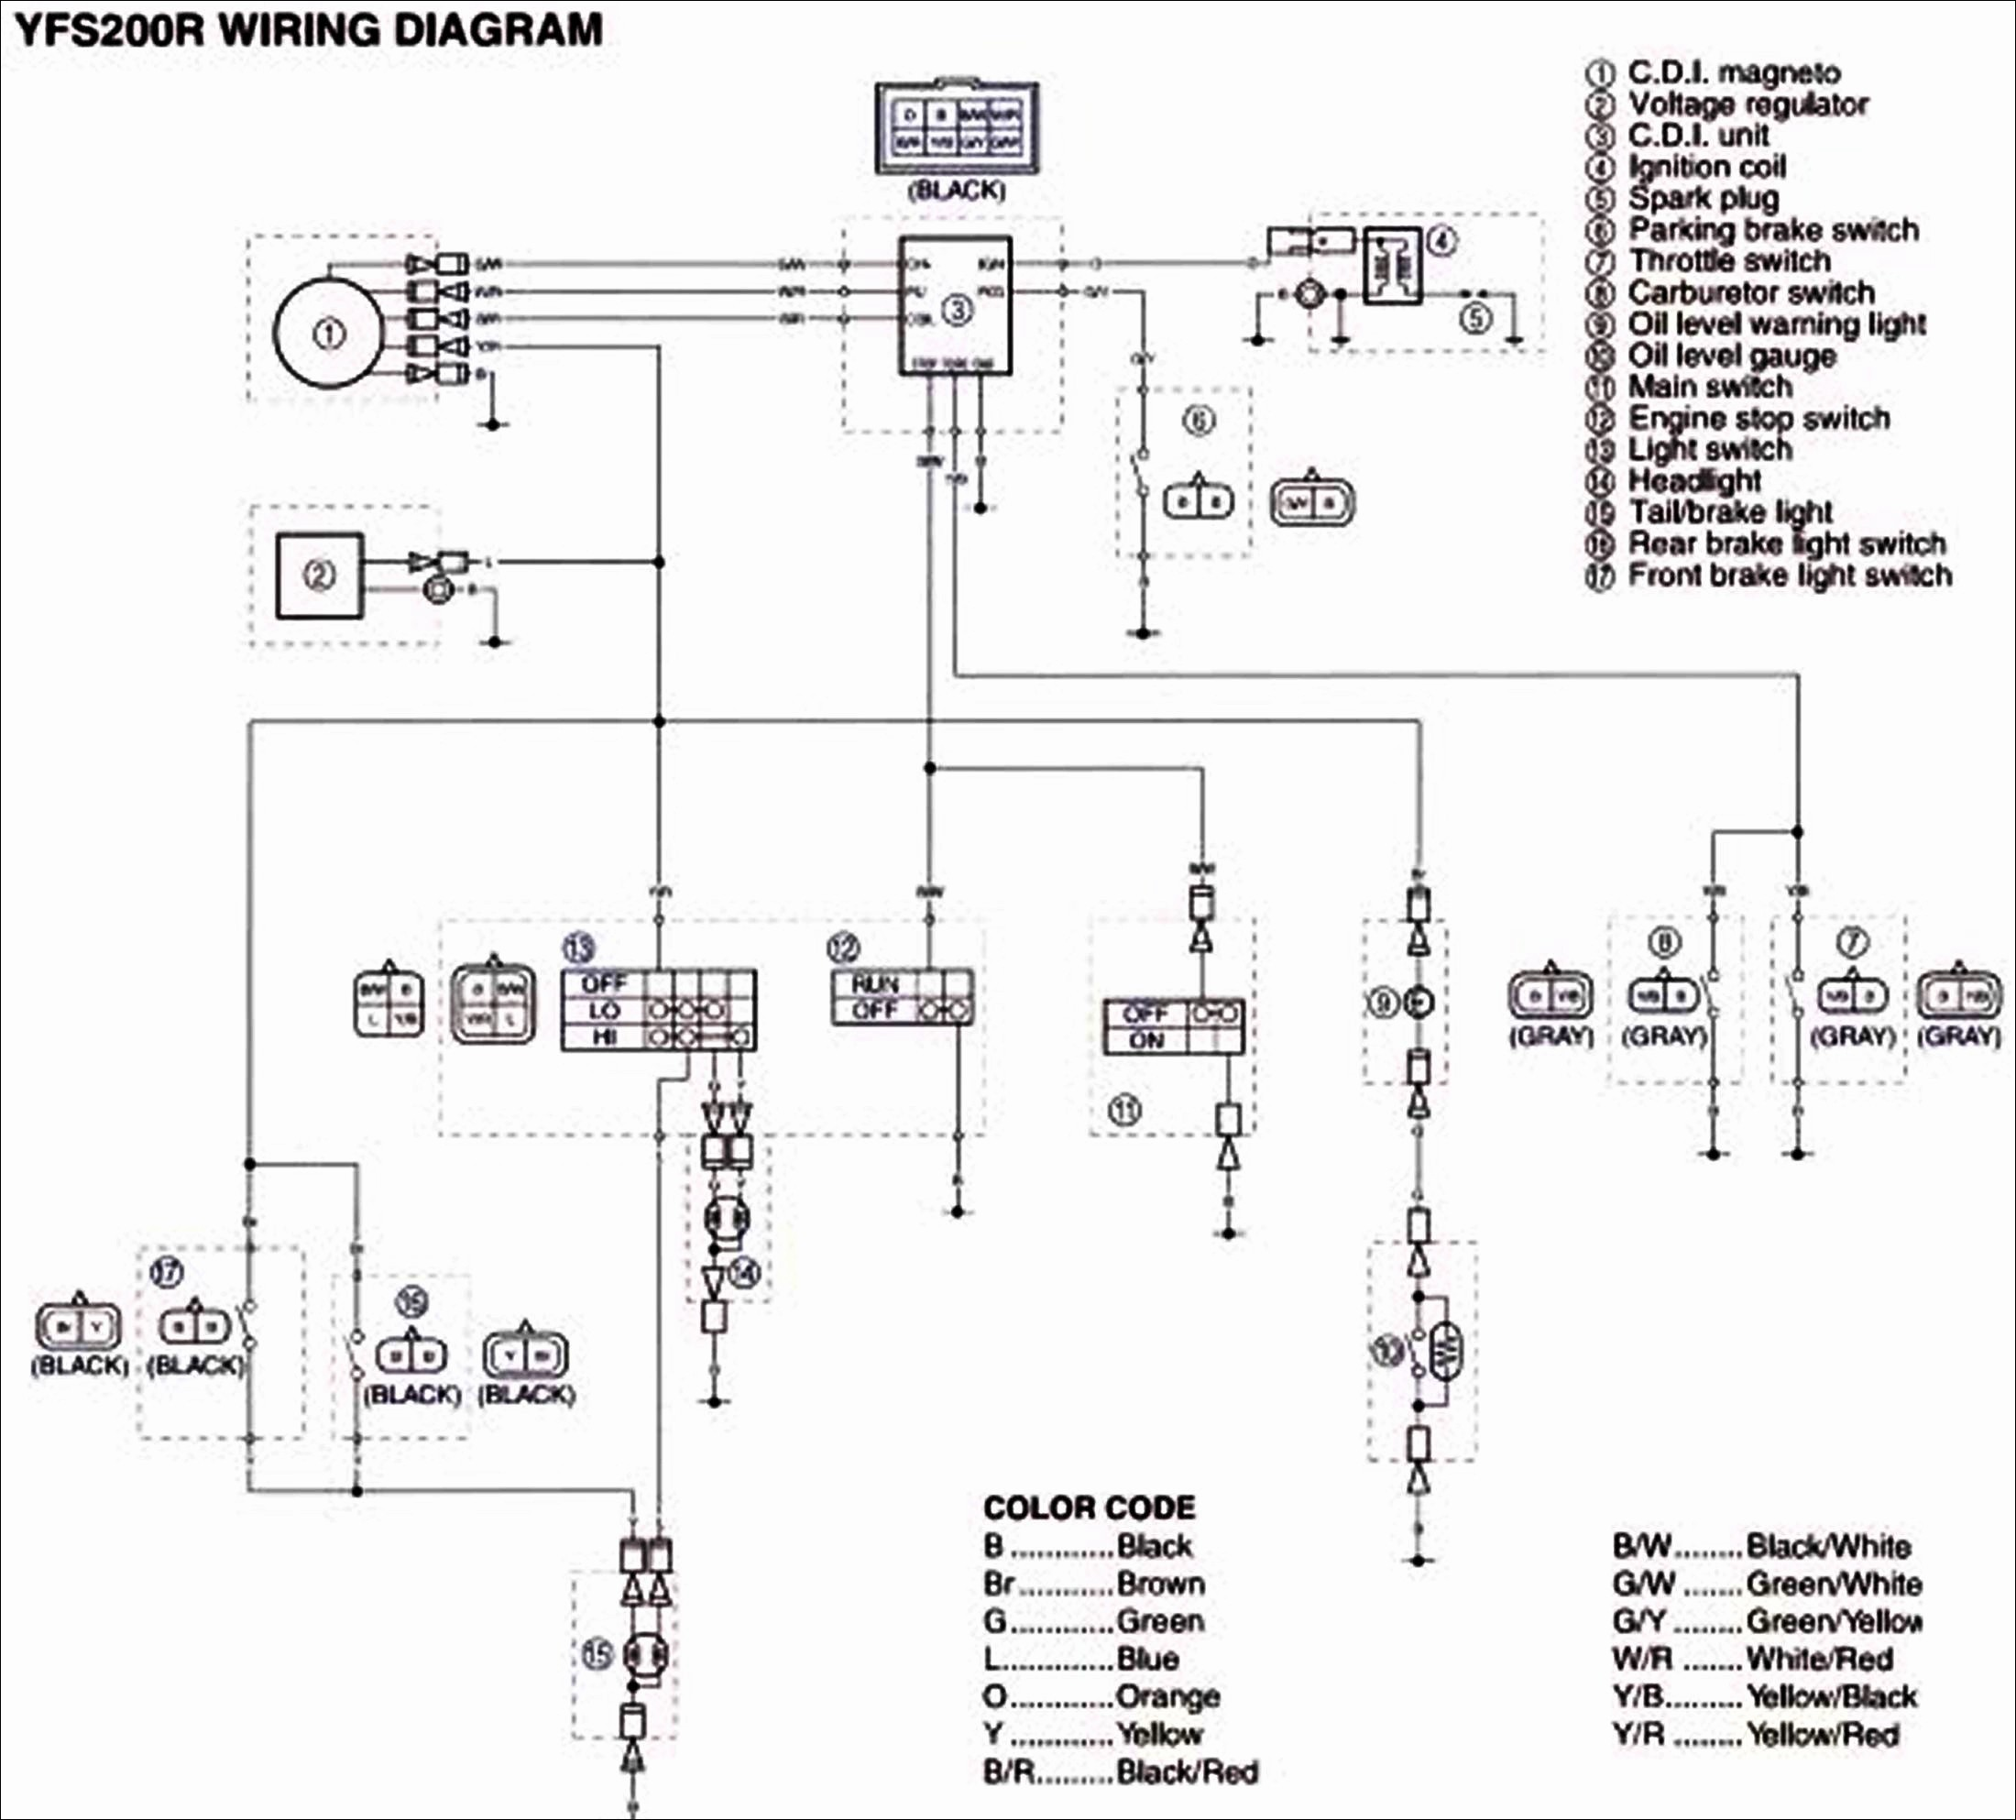 Banshee Wiring Diagram Wiring Diagram